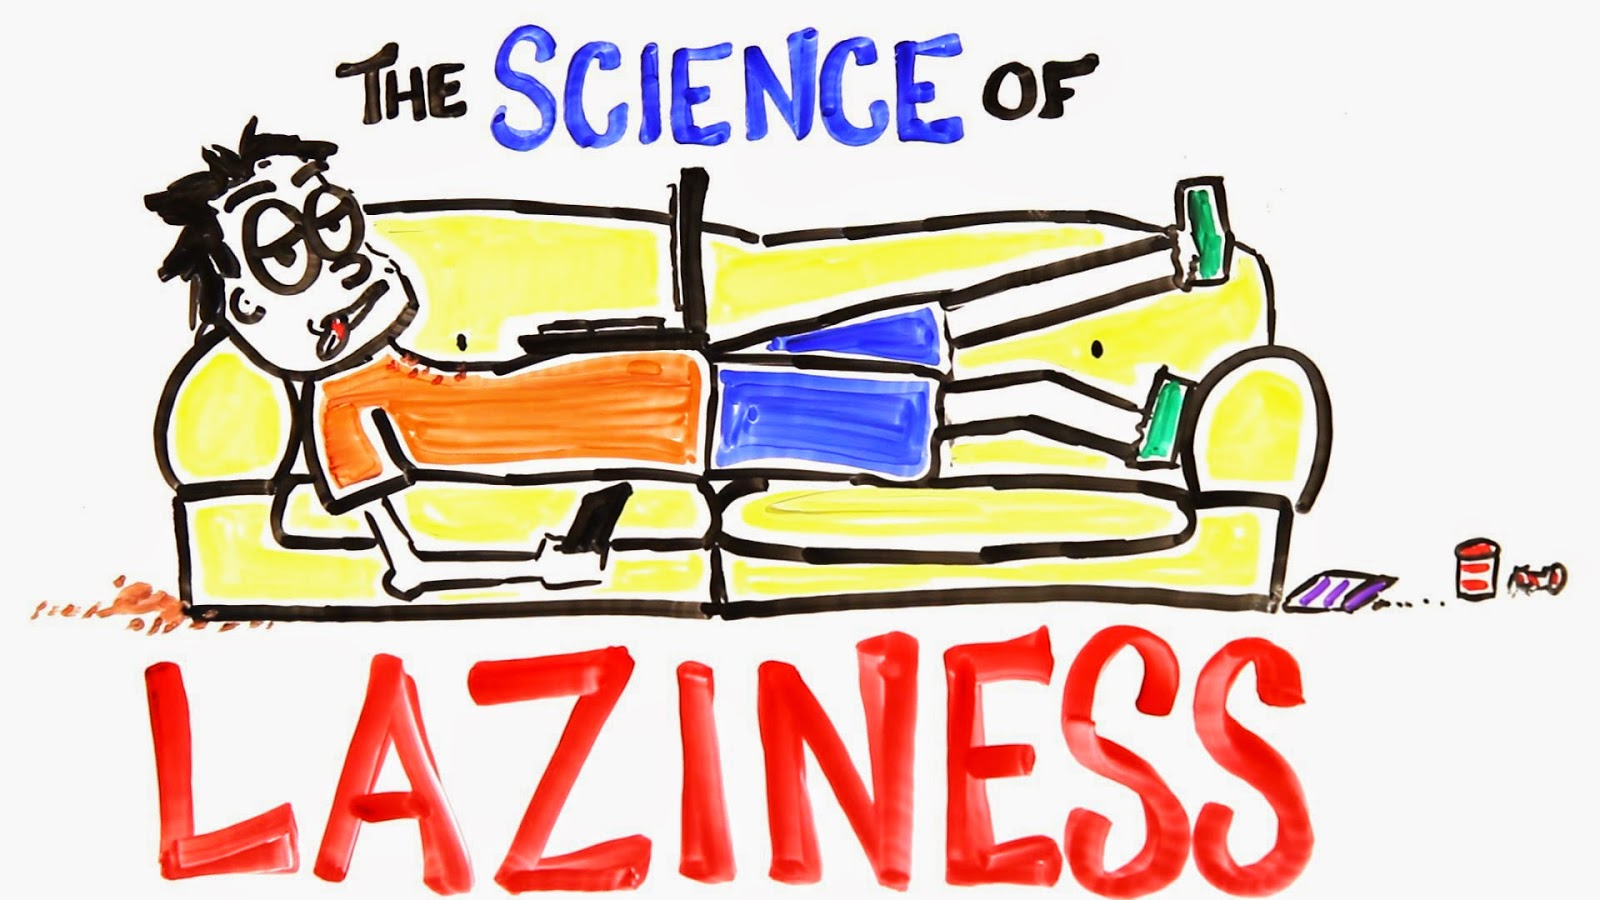 The Science Of Laziness: 'Couch Potato' Gene Influences Your Physical Activity Level